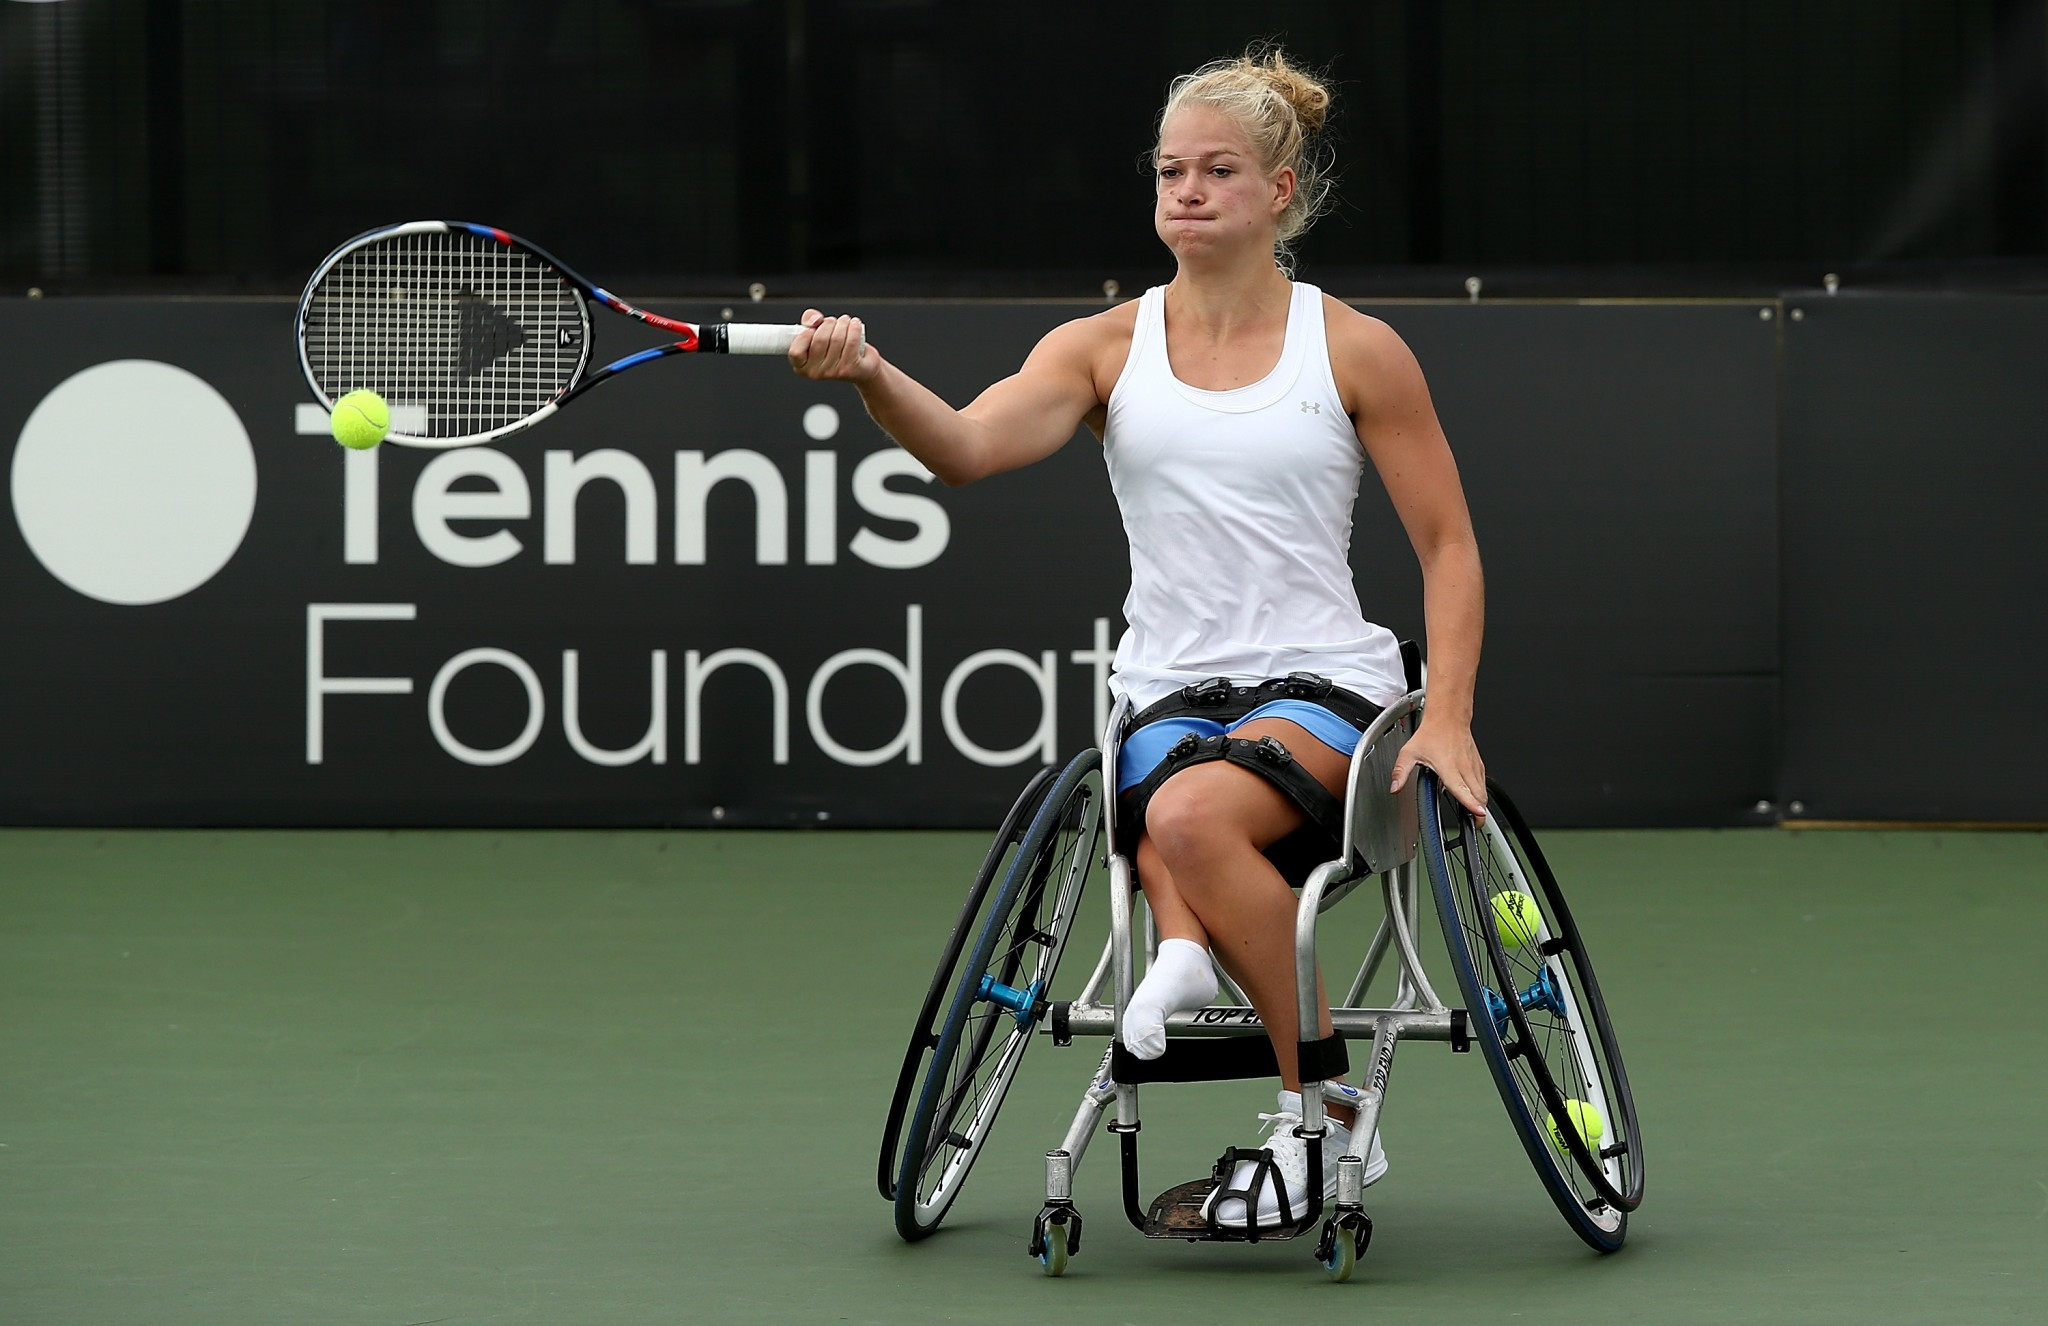 World number one Diede de Groot is aiming to hold all four Grand Slam titles at the same time ©ITF